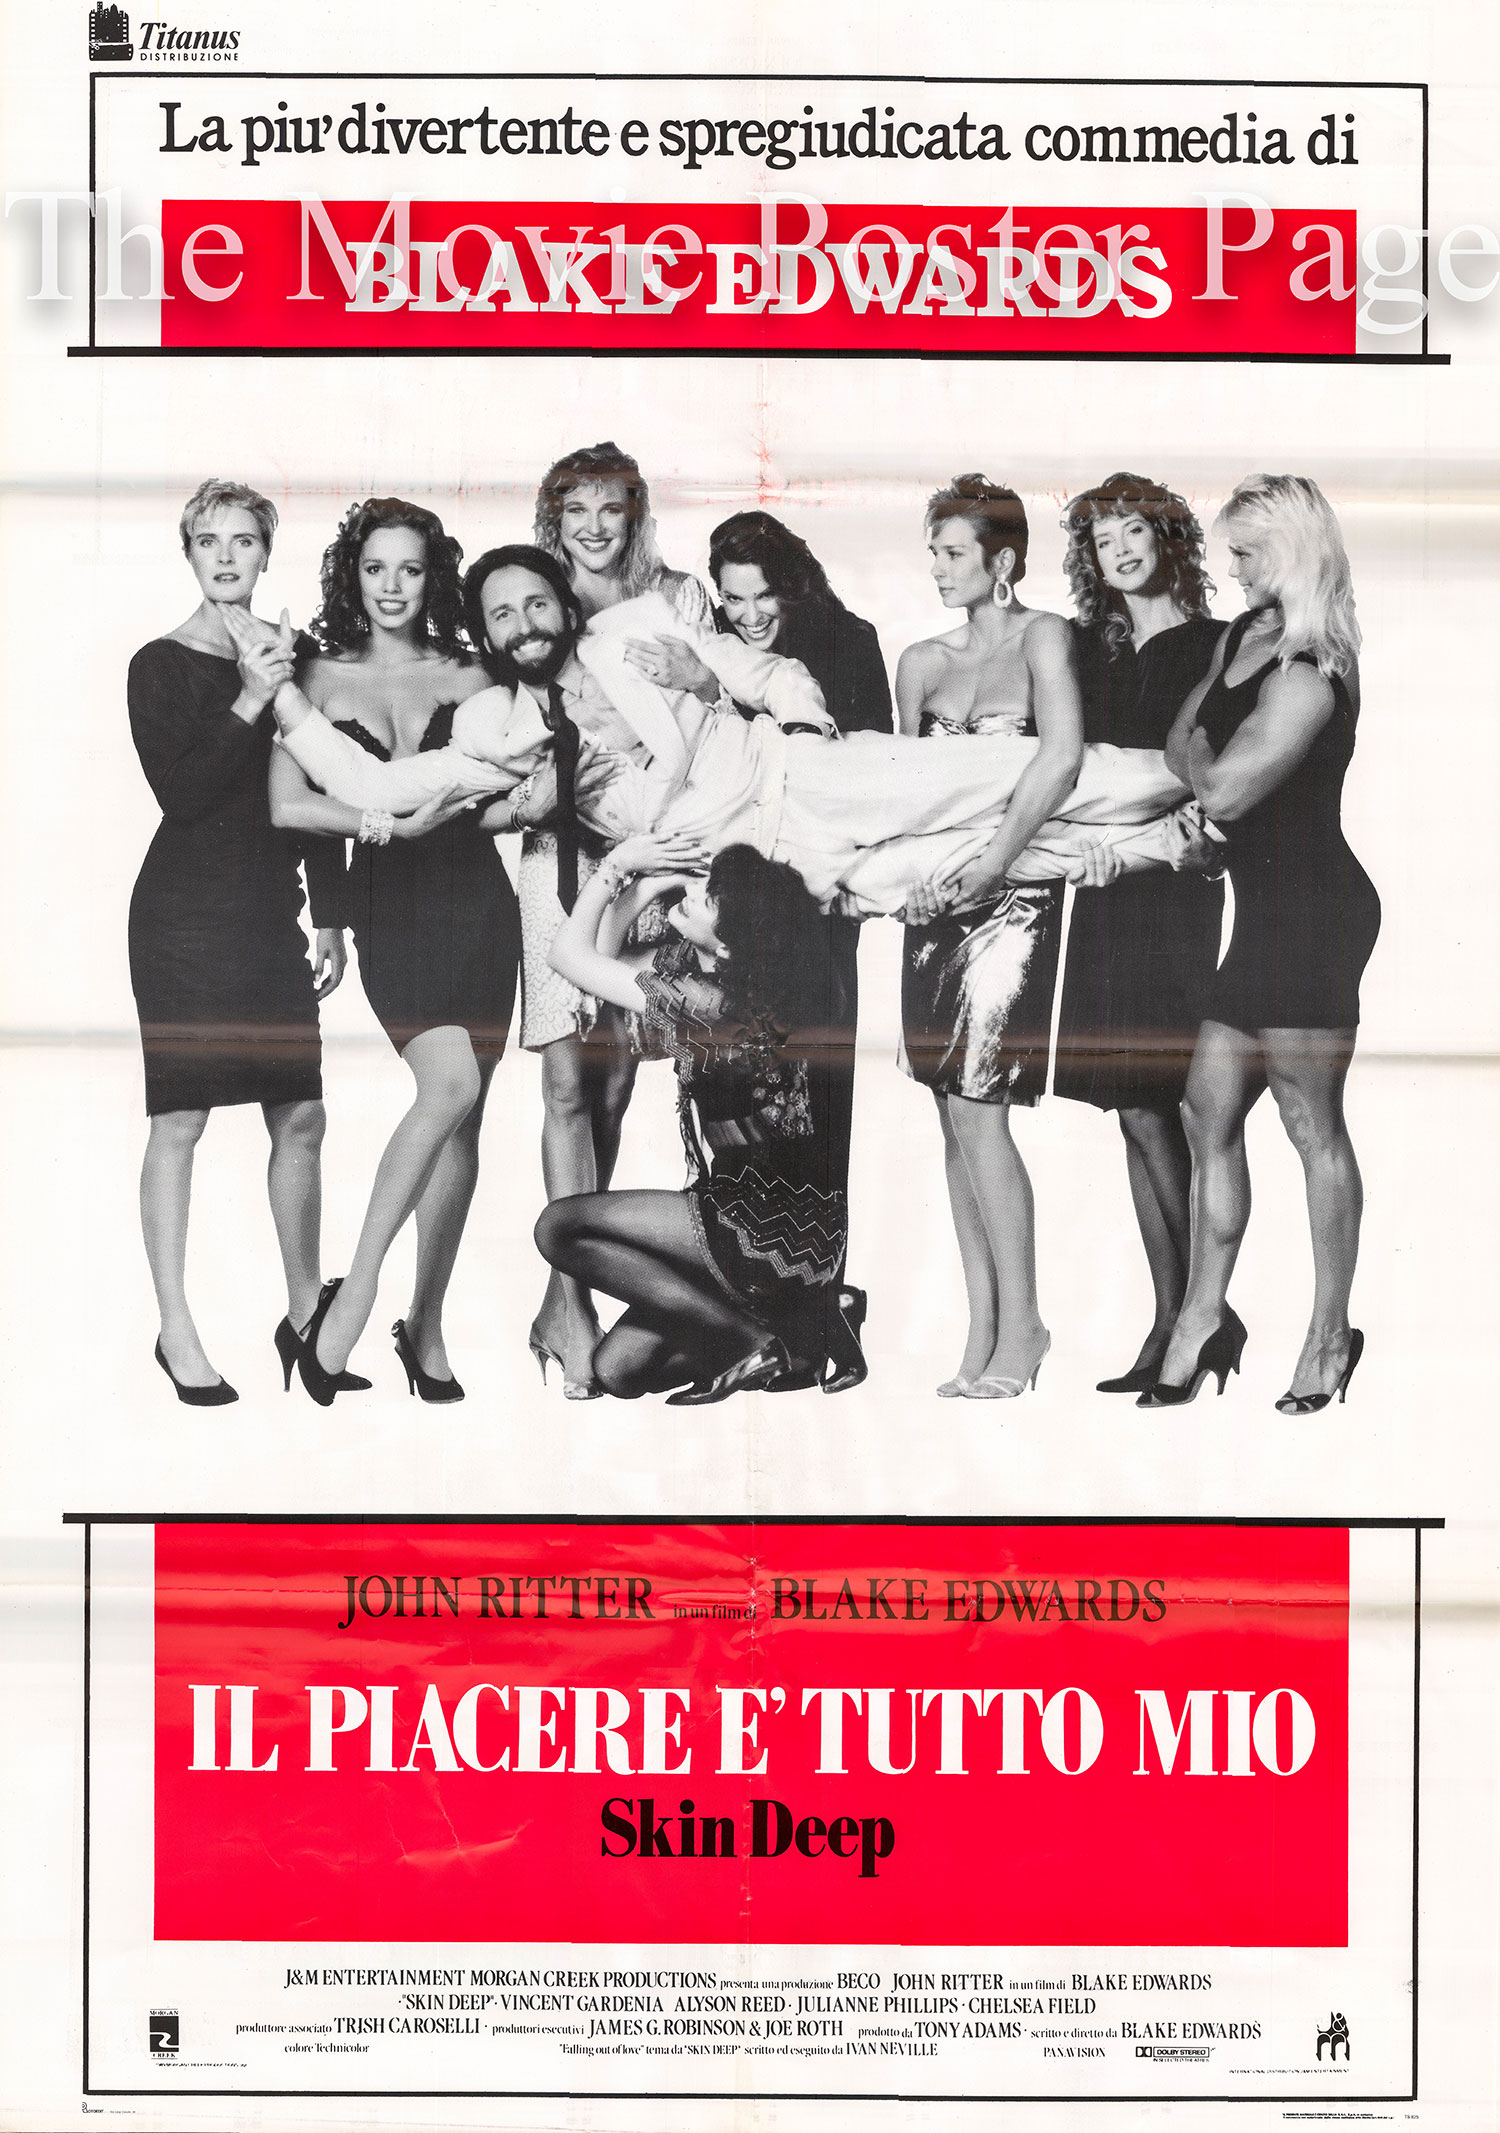 The image is of an Italian two-sheet promotional film poster for the 1989 Blake Edwards film <i>Skin Deep</i> starring John Ritter.